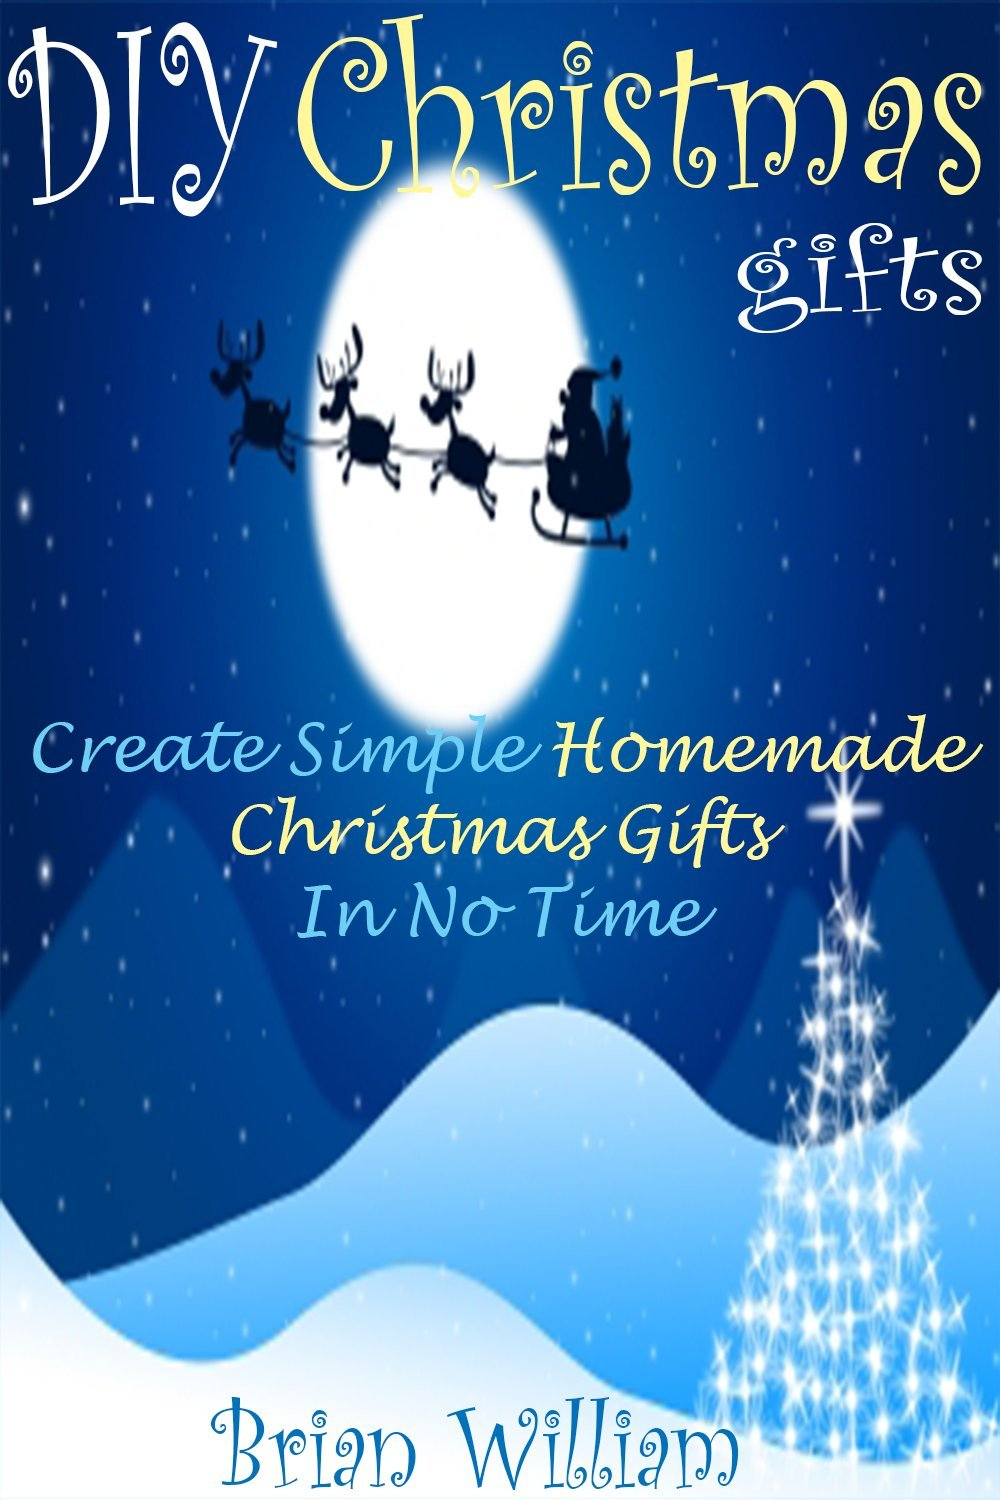 http://www.amazon.com/DIY-Christmas-Gifts-Homemade-Holidays-ebook/dp/B00PEC2KH0/ref=as_sl_pc_ss_til?tag=lettfromahome-20&linkCode=w01&linkId=WOSPVZV5XJZ3KGFB&creativeASIN=B00PEC2KH0